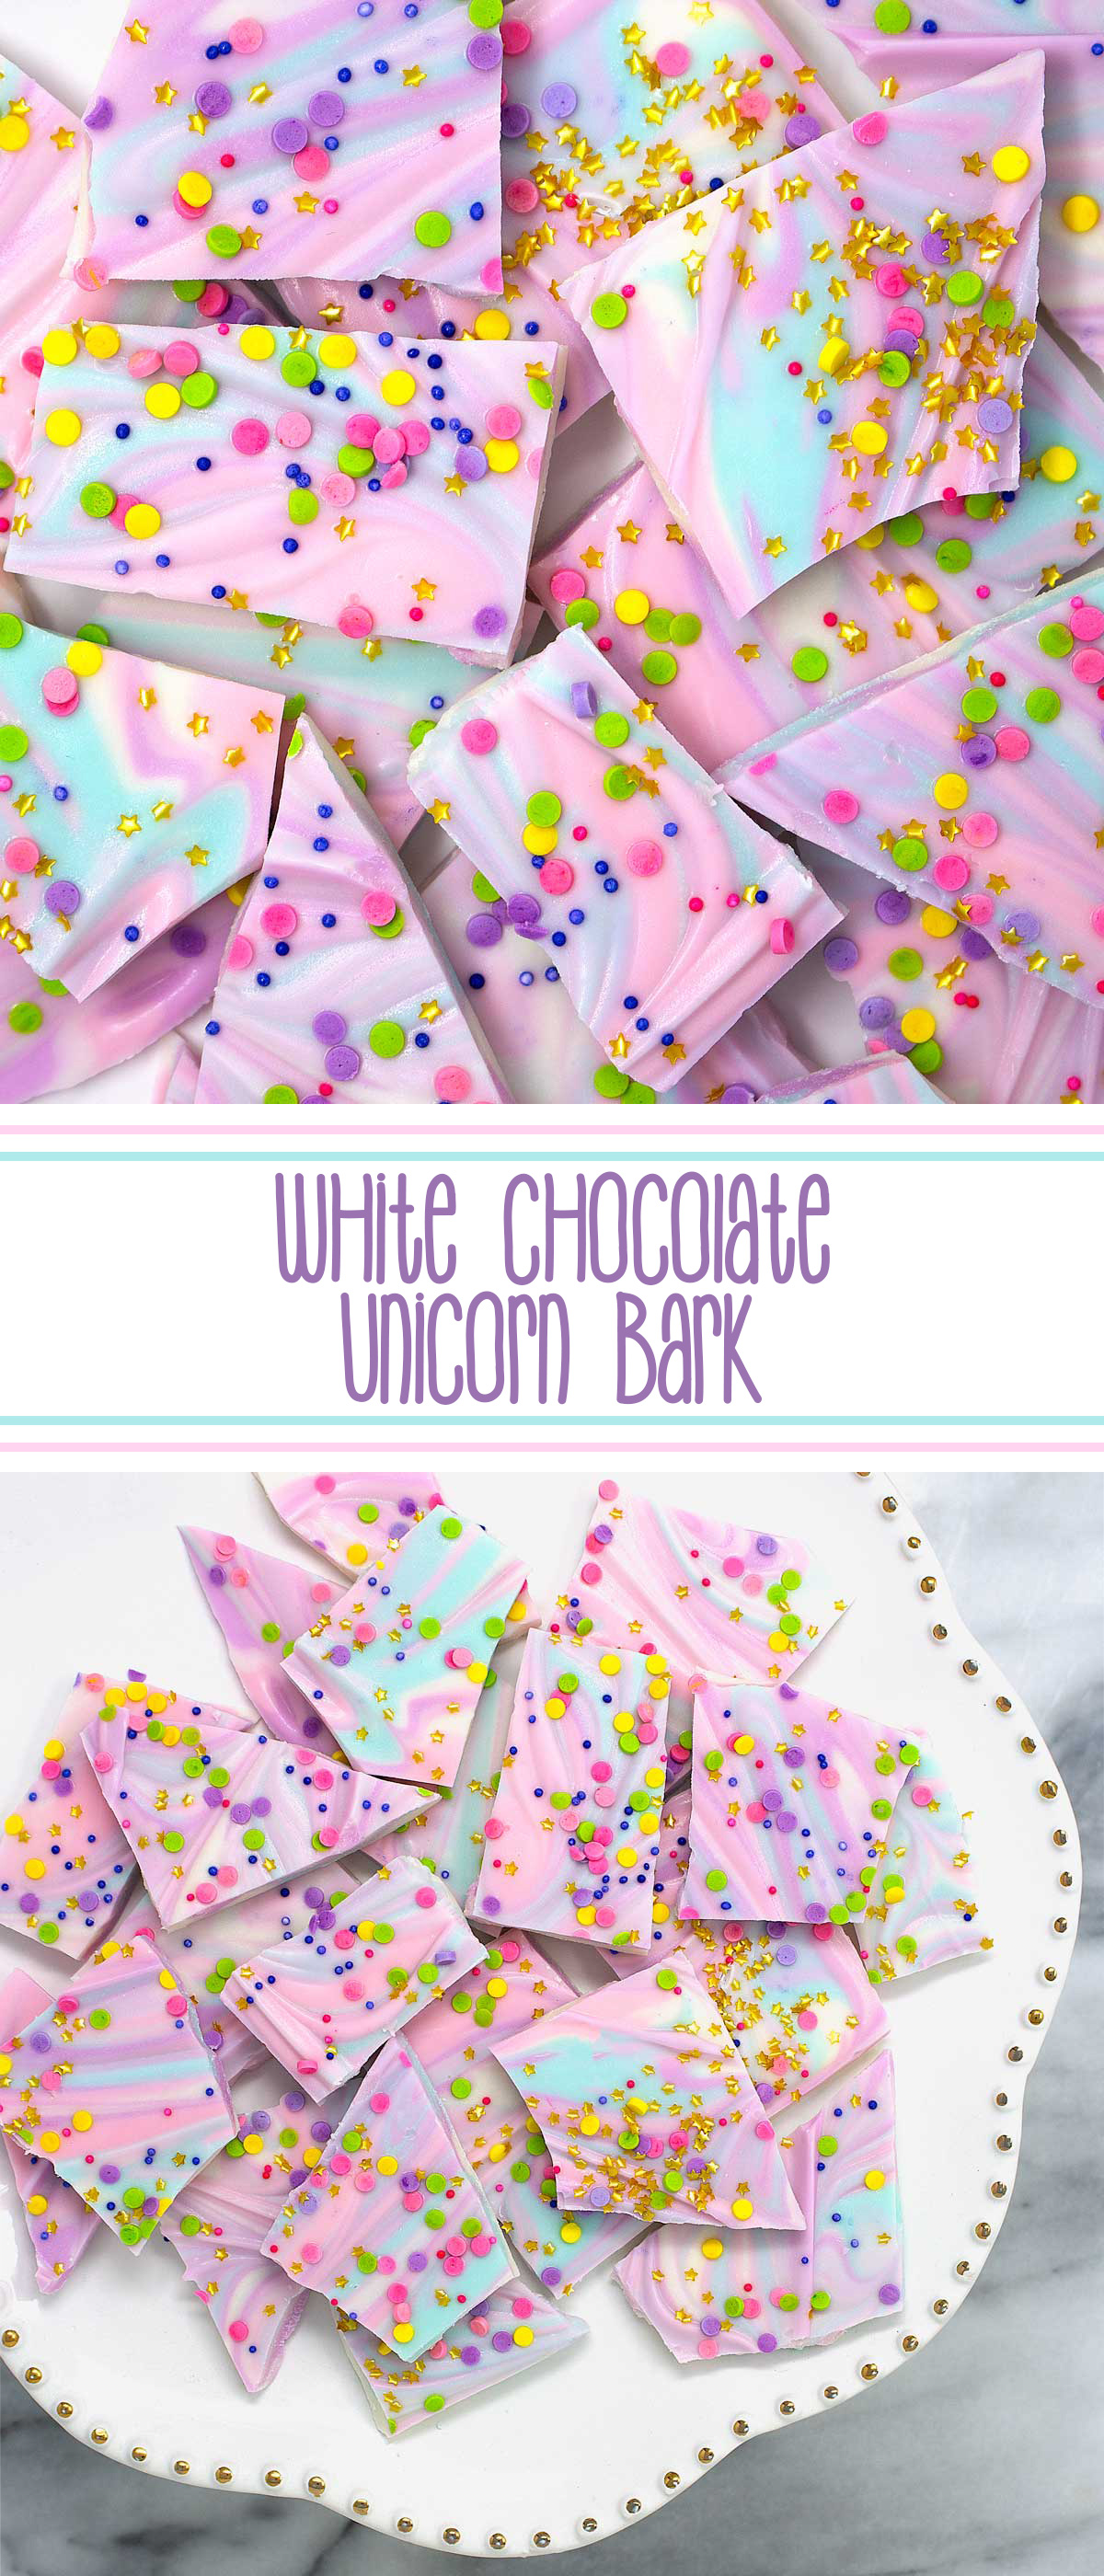 White Chocolate Unicorn Bark - colorful, melted white chocolate swirled together and topped with copious amounts of sprinkles make this unicorn inspired white chocolate magnificent fun and magically delicious. #whitechocolateunicornbark #unicornbark #unicornwhitechocolate #unicornchocolate #sprinkles #unicornbarkrecipe